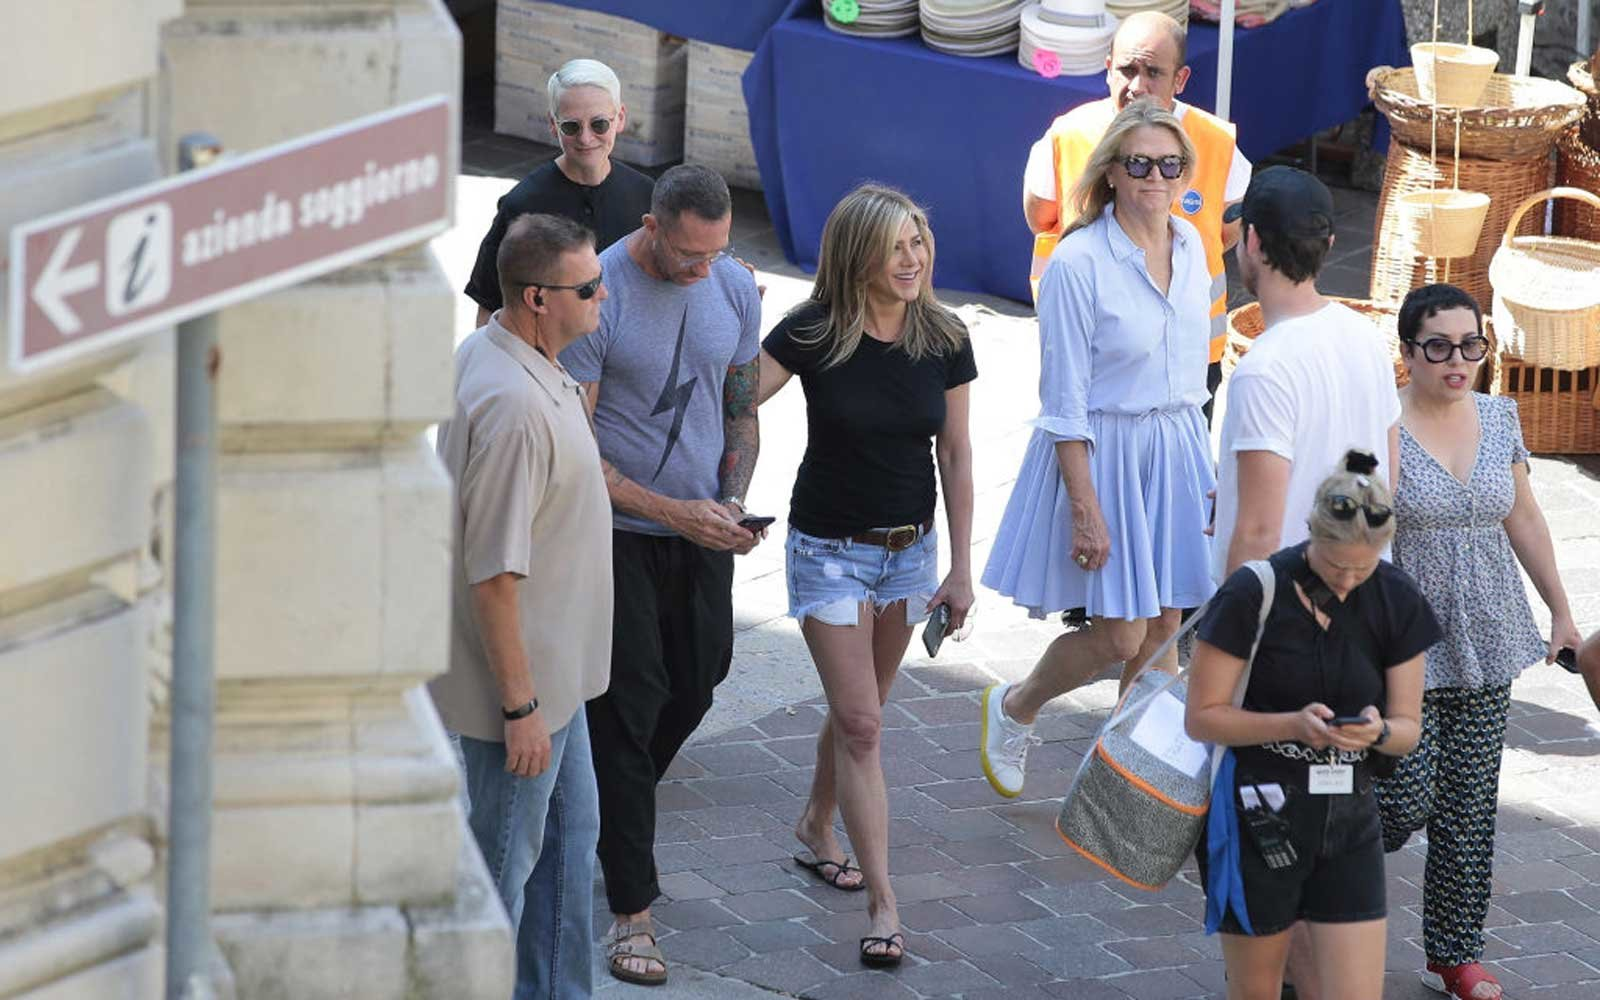 Jennifer Aniston is seen on set filming 'Murder Mystery' on July 30, 2018 in Como, Italy.